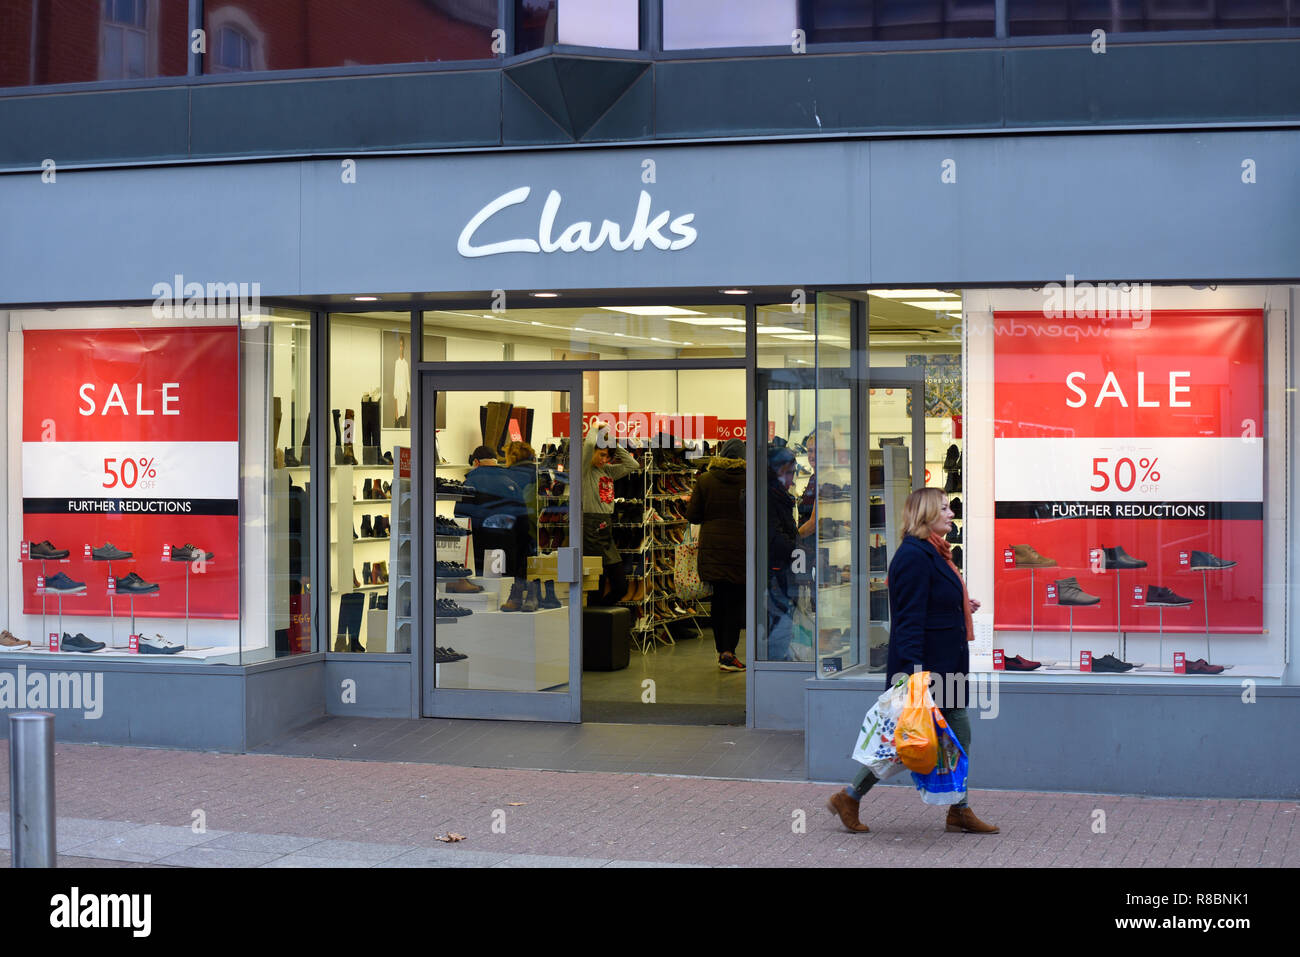 f4f1e431 Clarks shoe shop store front in High Street, Southend on Sea, Essex, UK